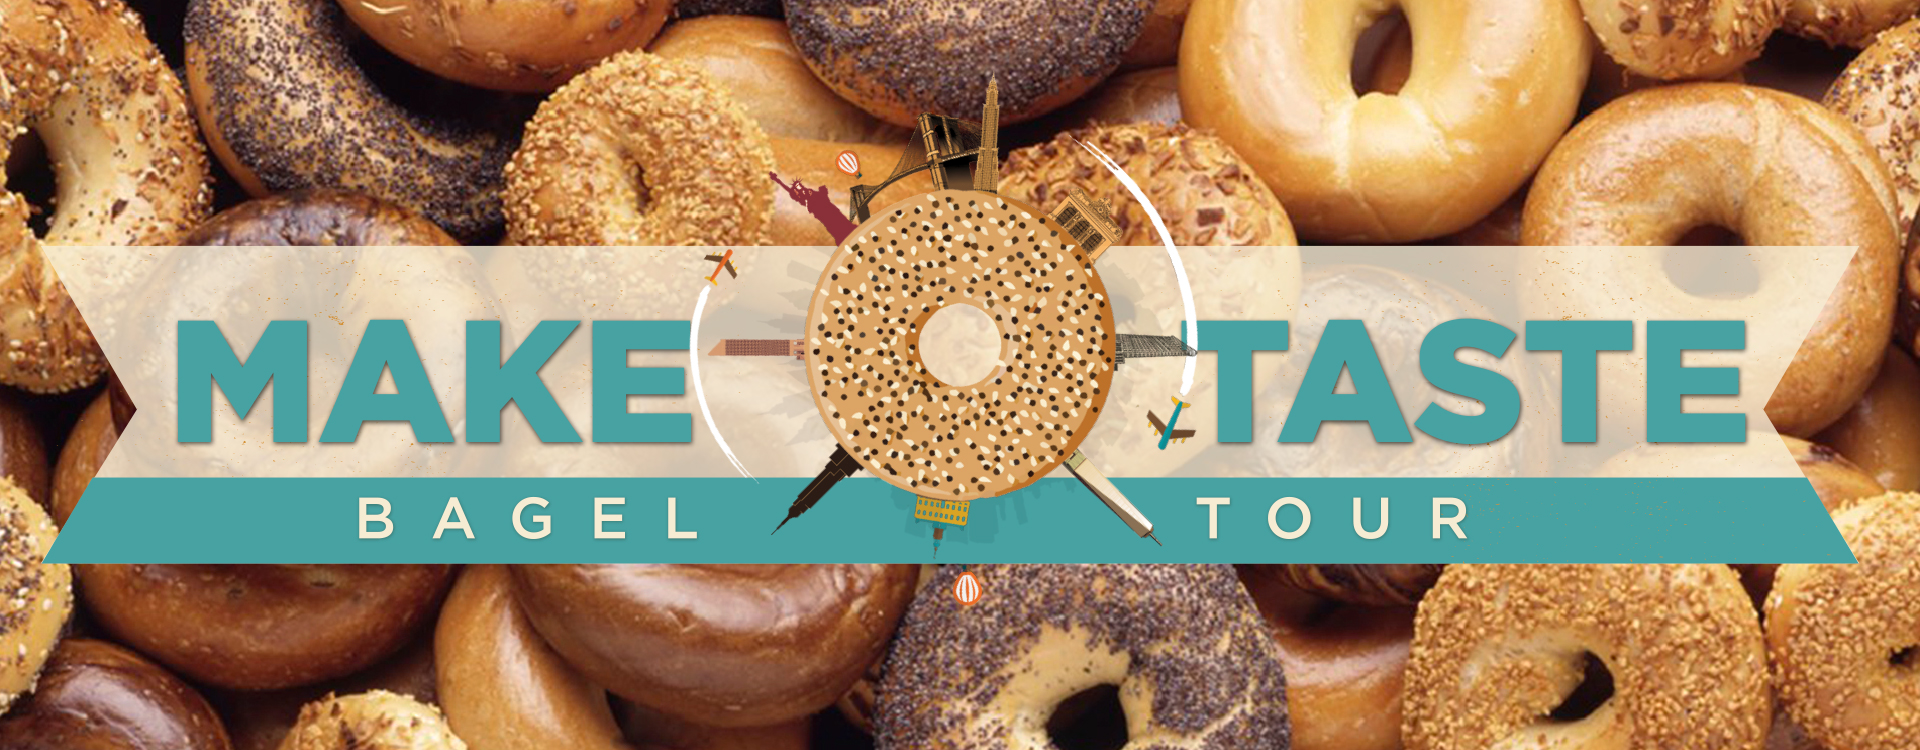 Bens Bagel Tour-Make-Taste